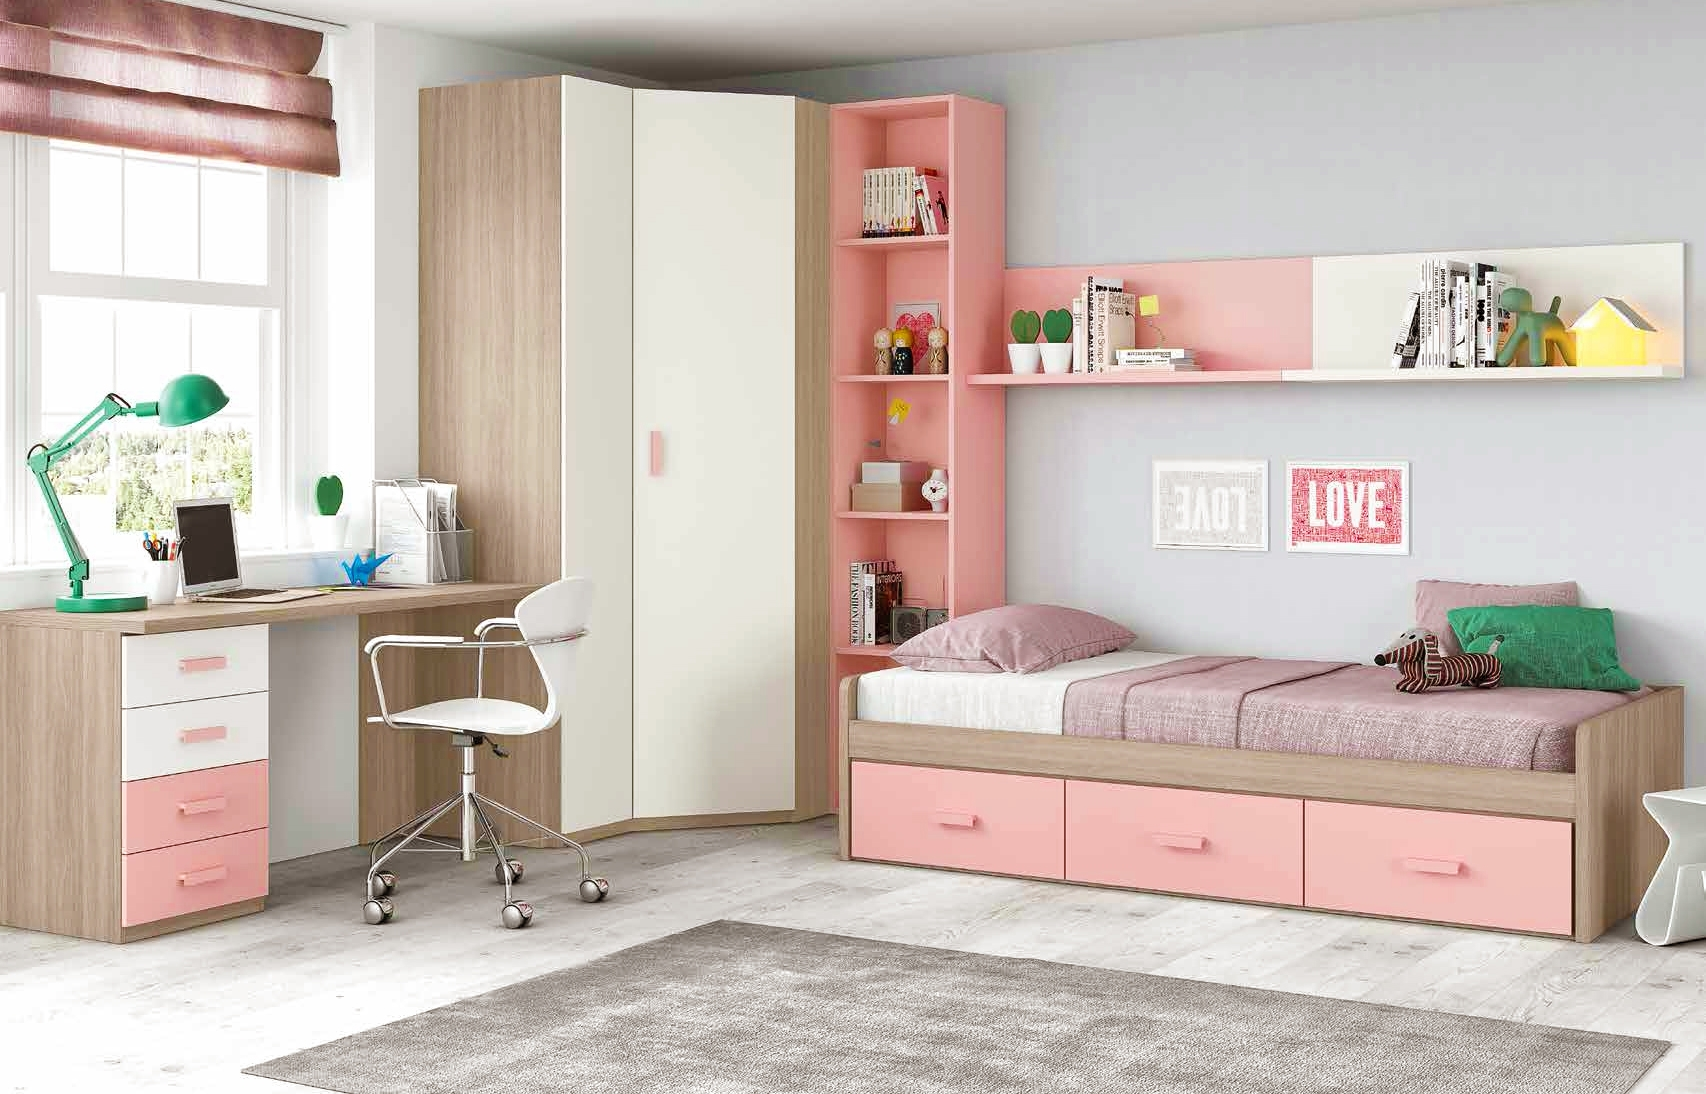 Photo de chambre d ado fille poitiers design for Chambre d ado fille